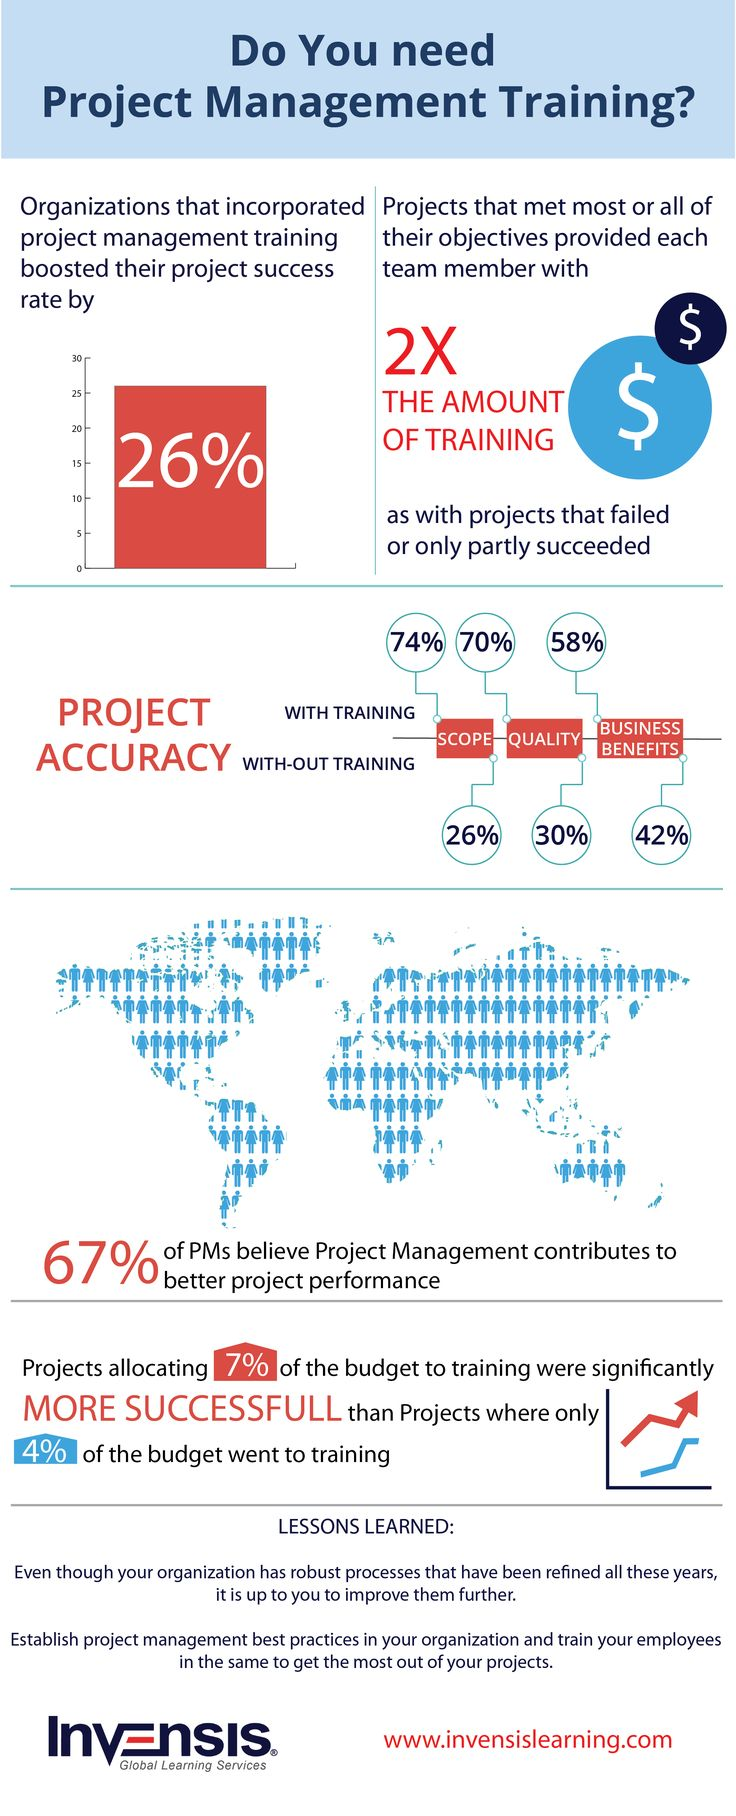 The 25 best project management certification ideas on pinterest an infographic depicting why you need project management certification training understand how organizations that incorporated project management training xflitez Image collections